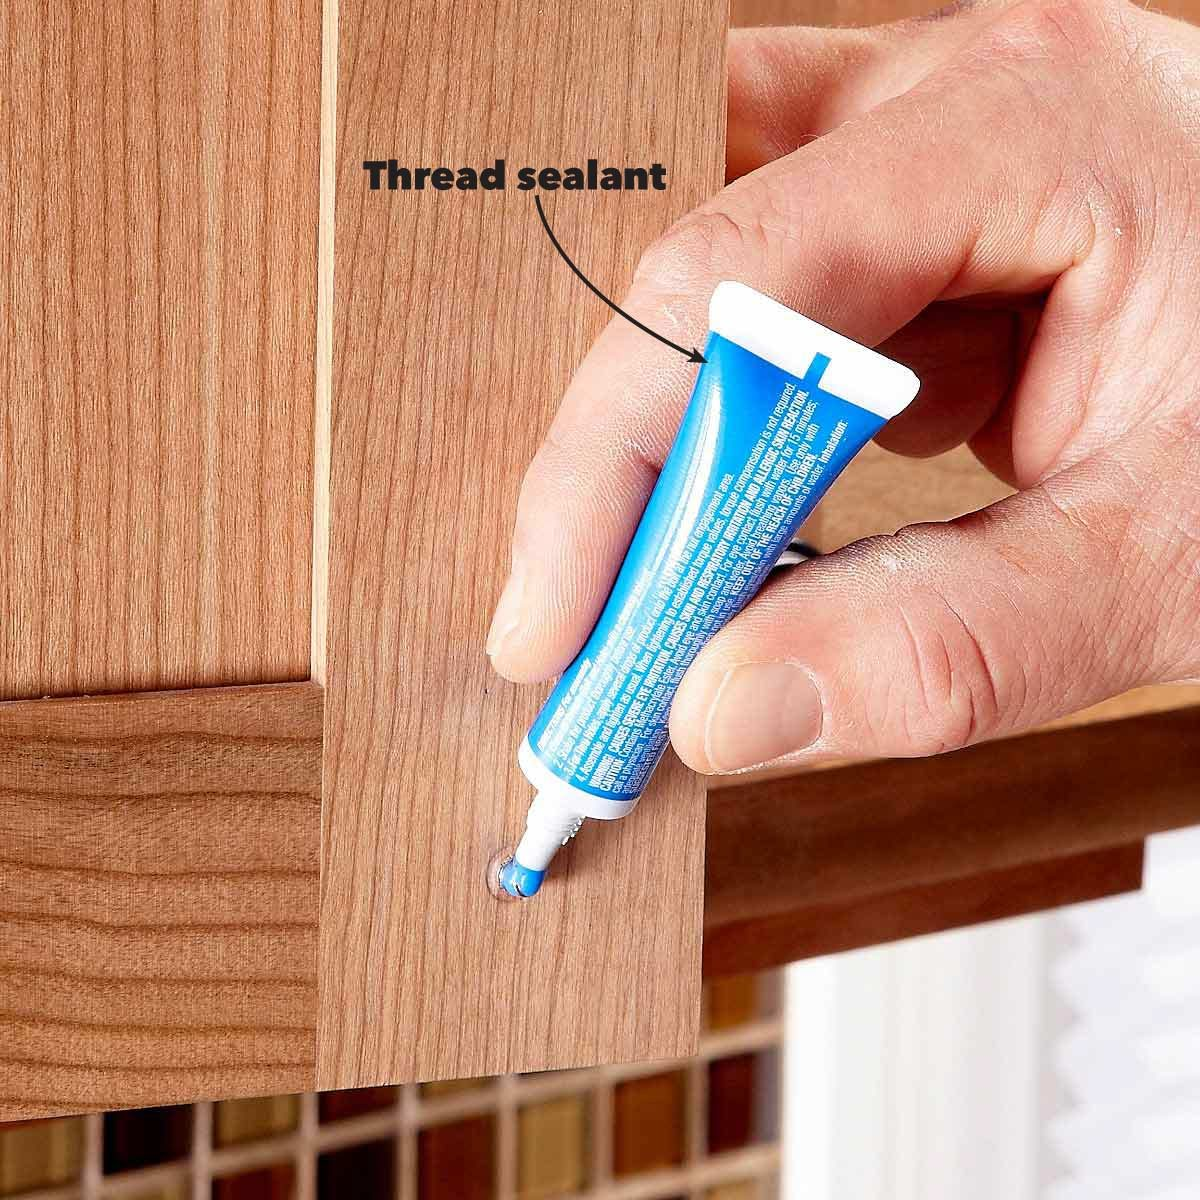 Use Thread Sealant to Keep the Screws Tight